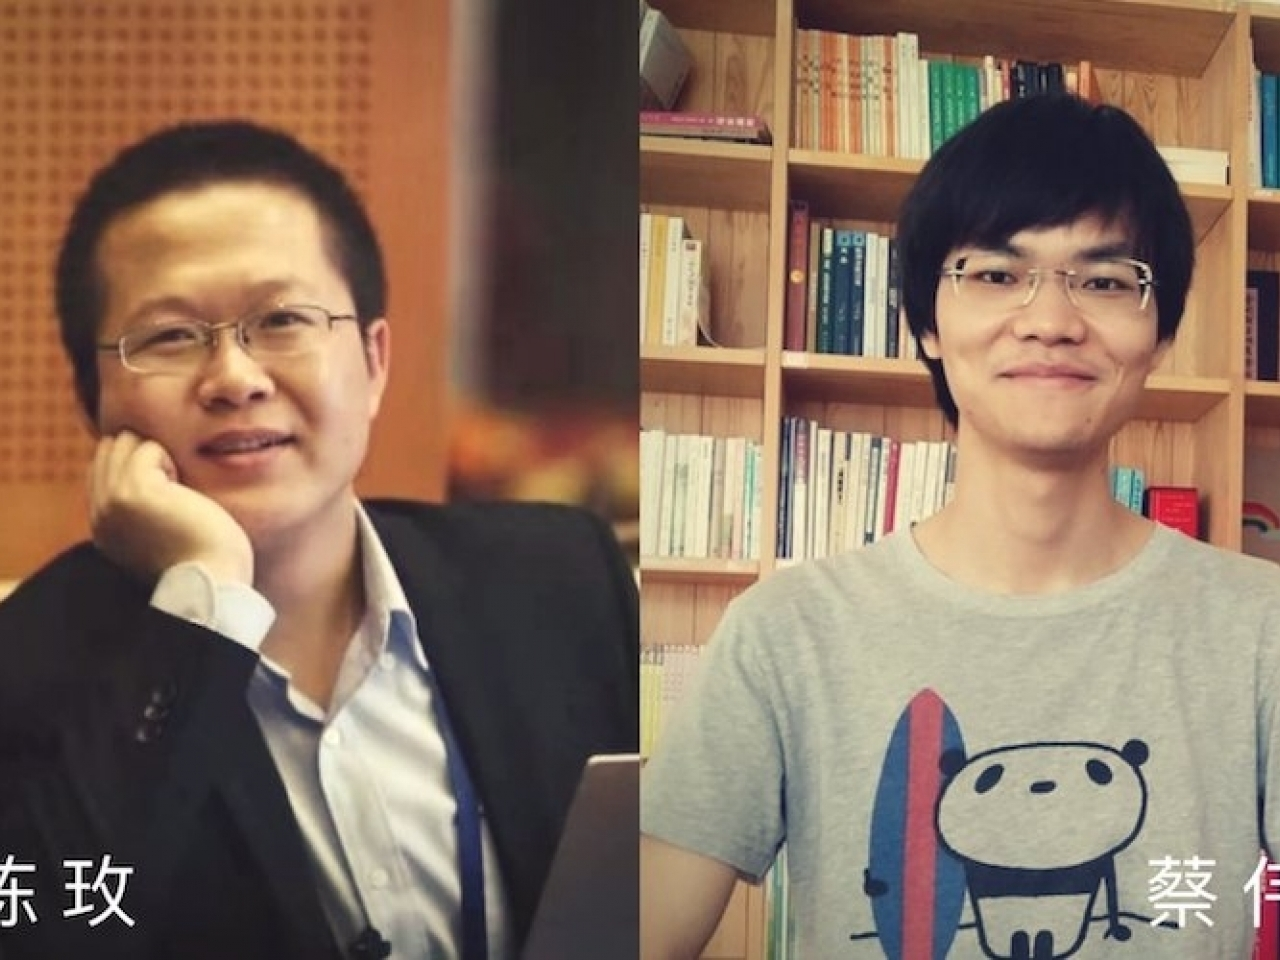 """Chen (left) and Cai (right) have pleaded guilty to """"stirring up trouble and picking quarrels""""  for archiving sensitive material from the internet. Photo courtesy: social media of Chen's elder brother"""